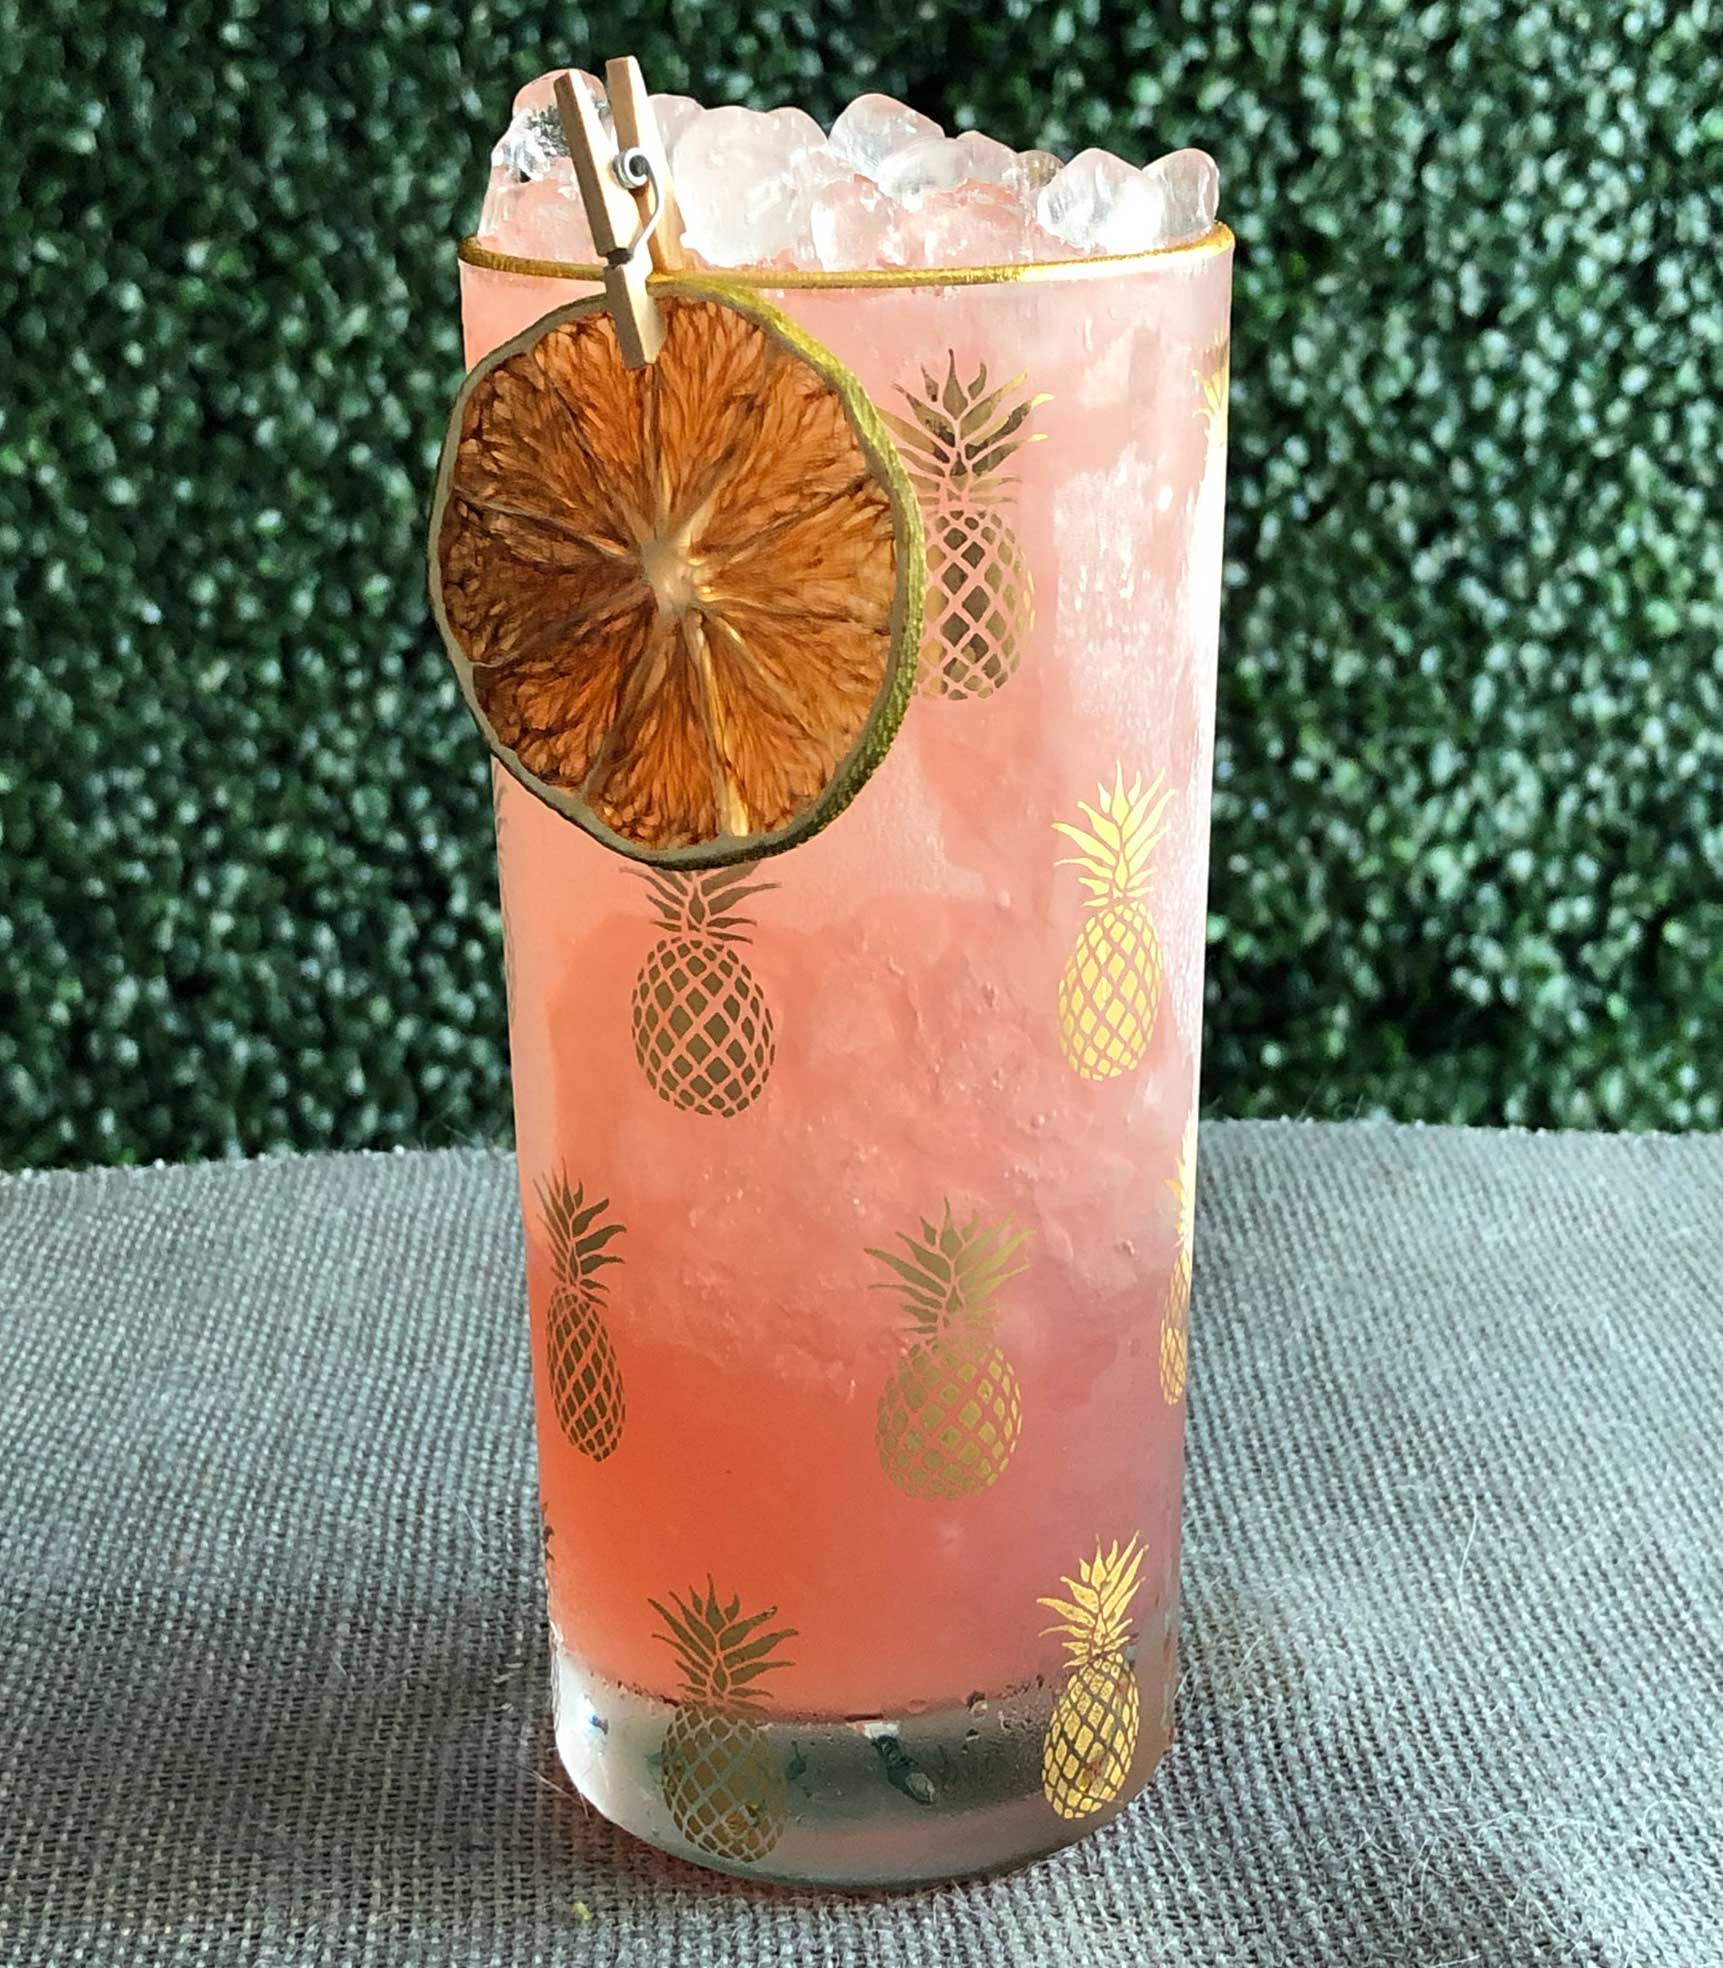 An example of the Zirbenz Swizzle, the mixed drink (frappe), by based on a drink by Jamie Boudreau, Canon, Seattle, Washington, featuring Hayman's Old Tom Gin, Zirbenz Stone Pine Liqueur of the Alps, Dolin Génépy le Chamois Liqueur, lime juice, and simple syrup; photo by Lee Edwards